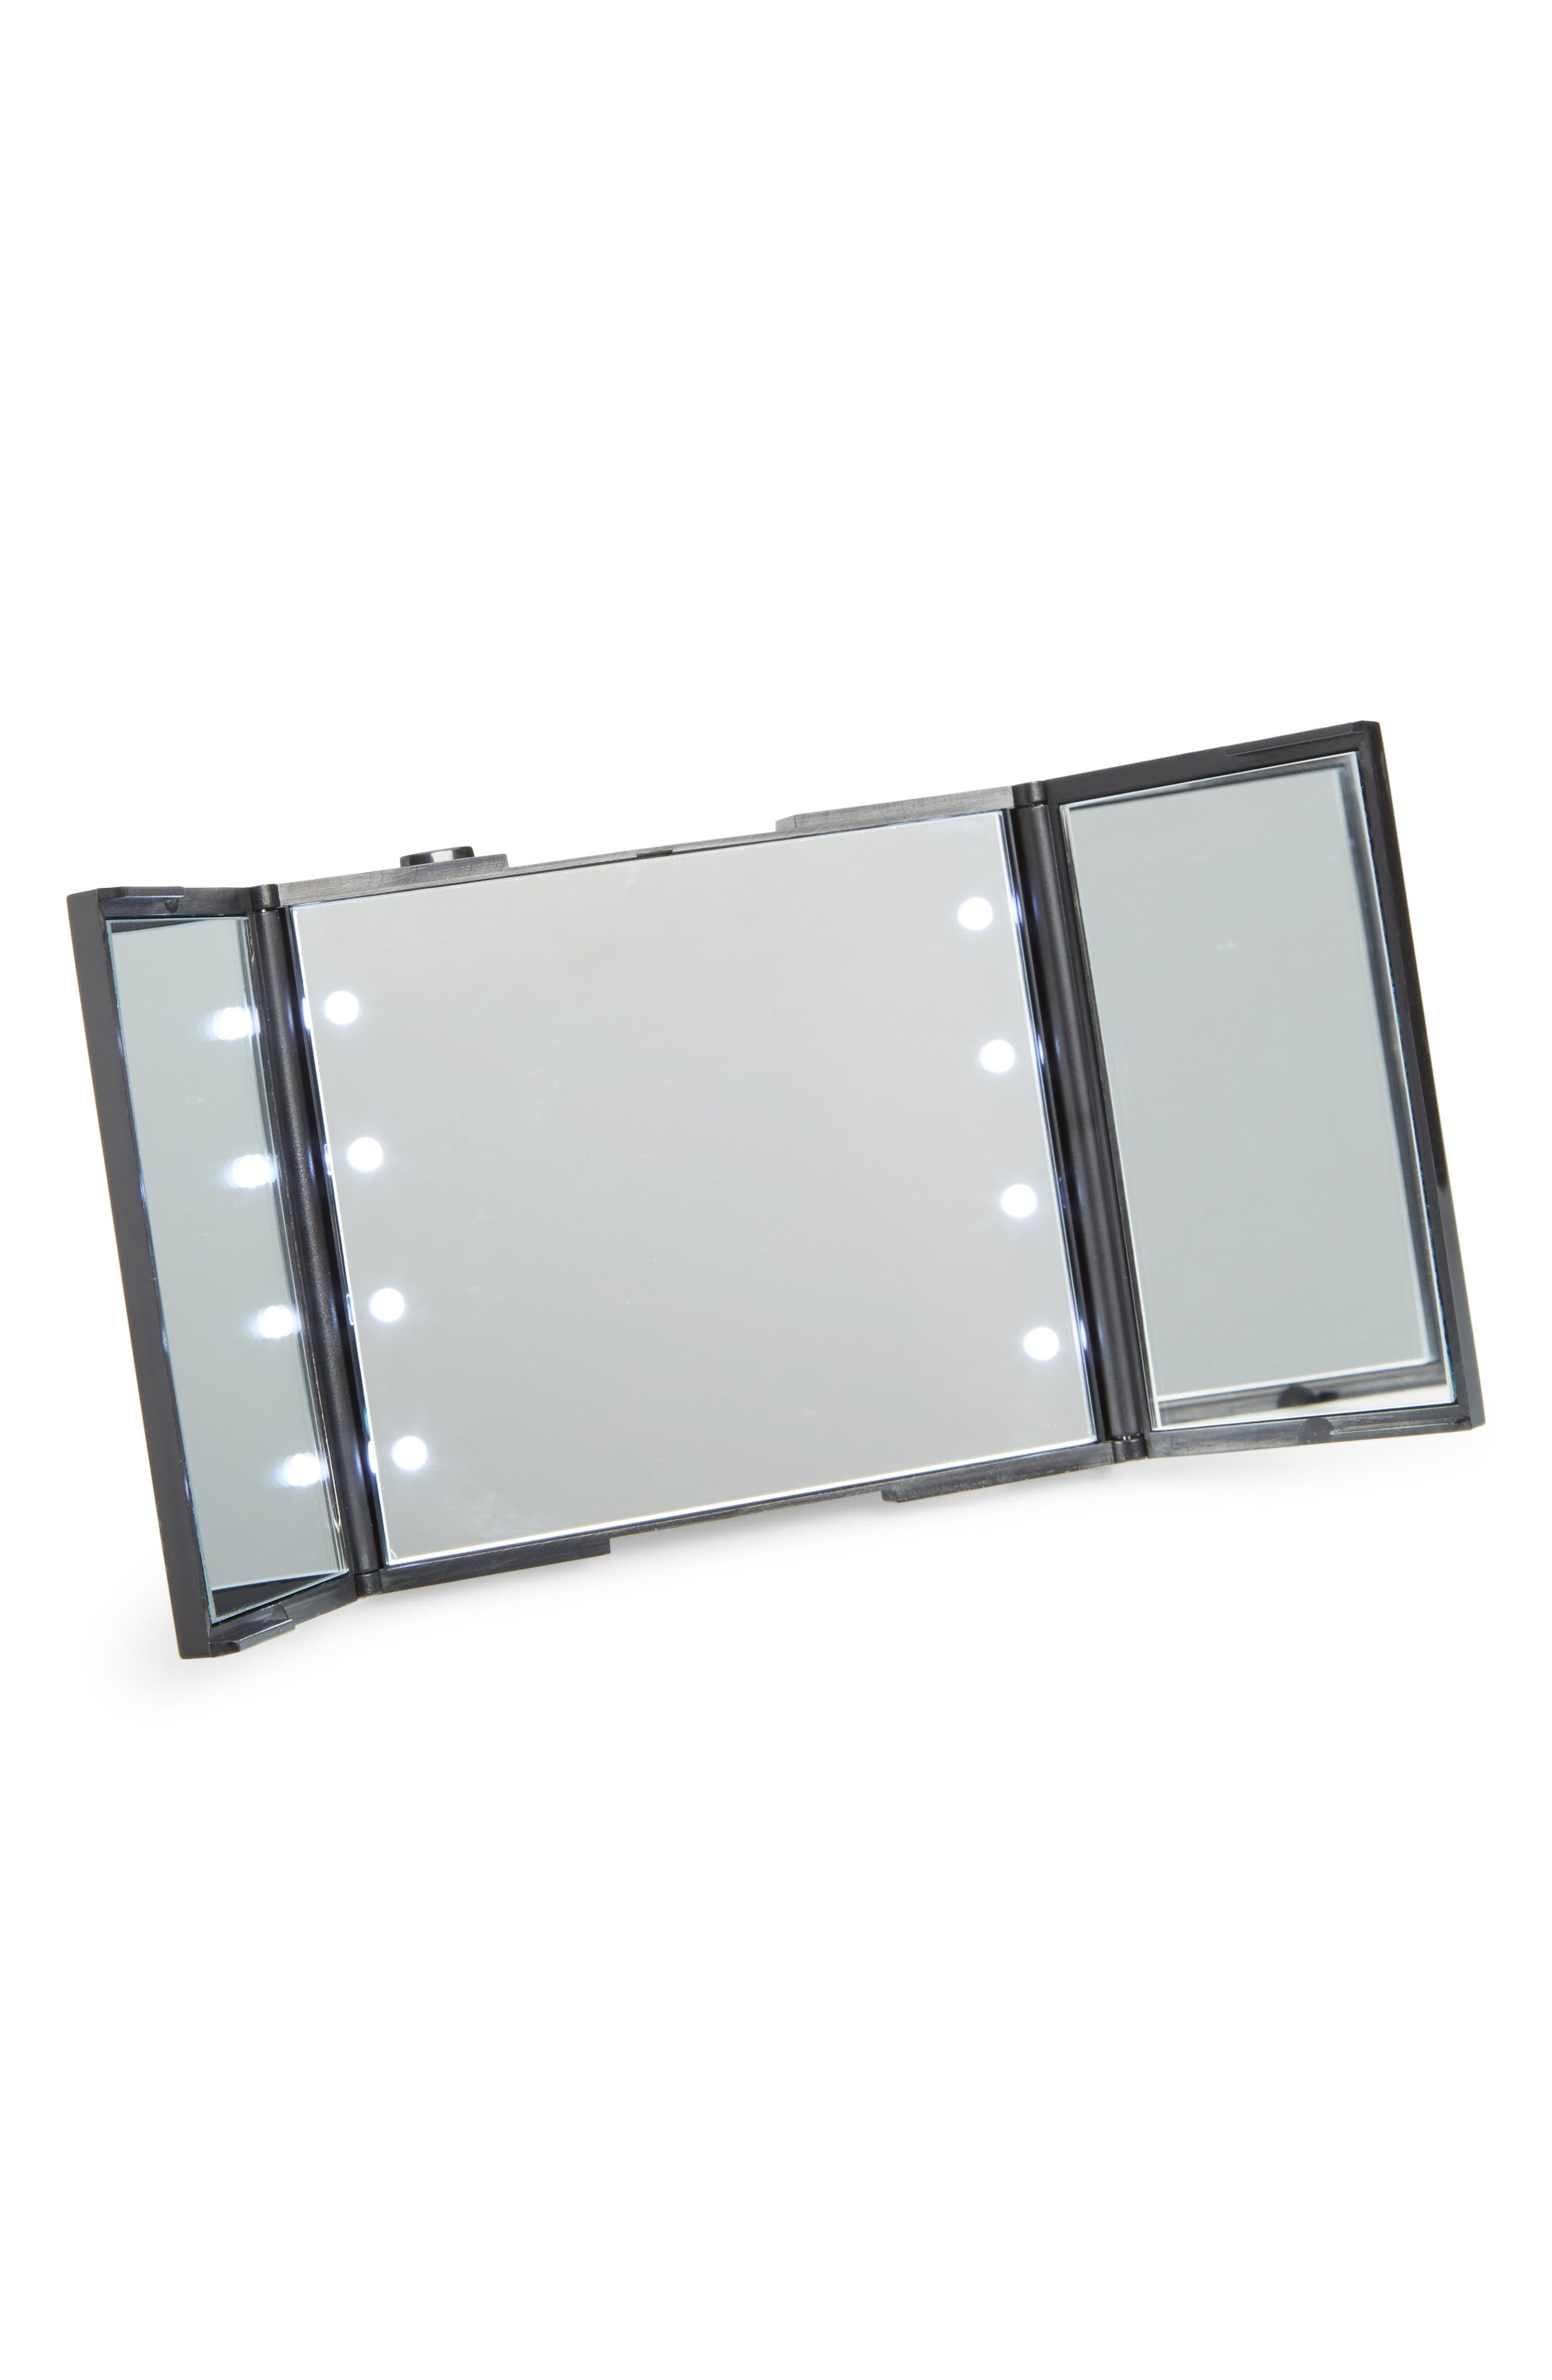 Main Image - Impressions Vanity Co. Trifold Compact LED Makeup Mirror with Stand